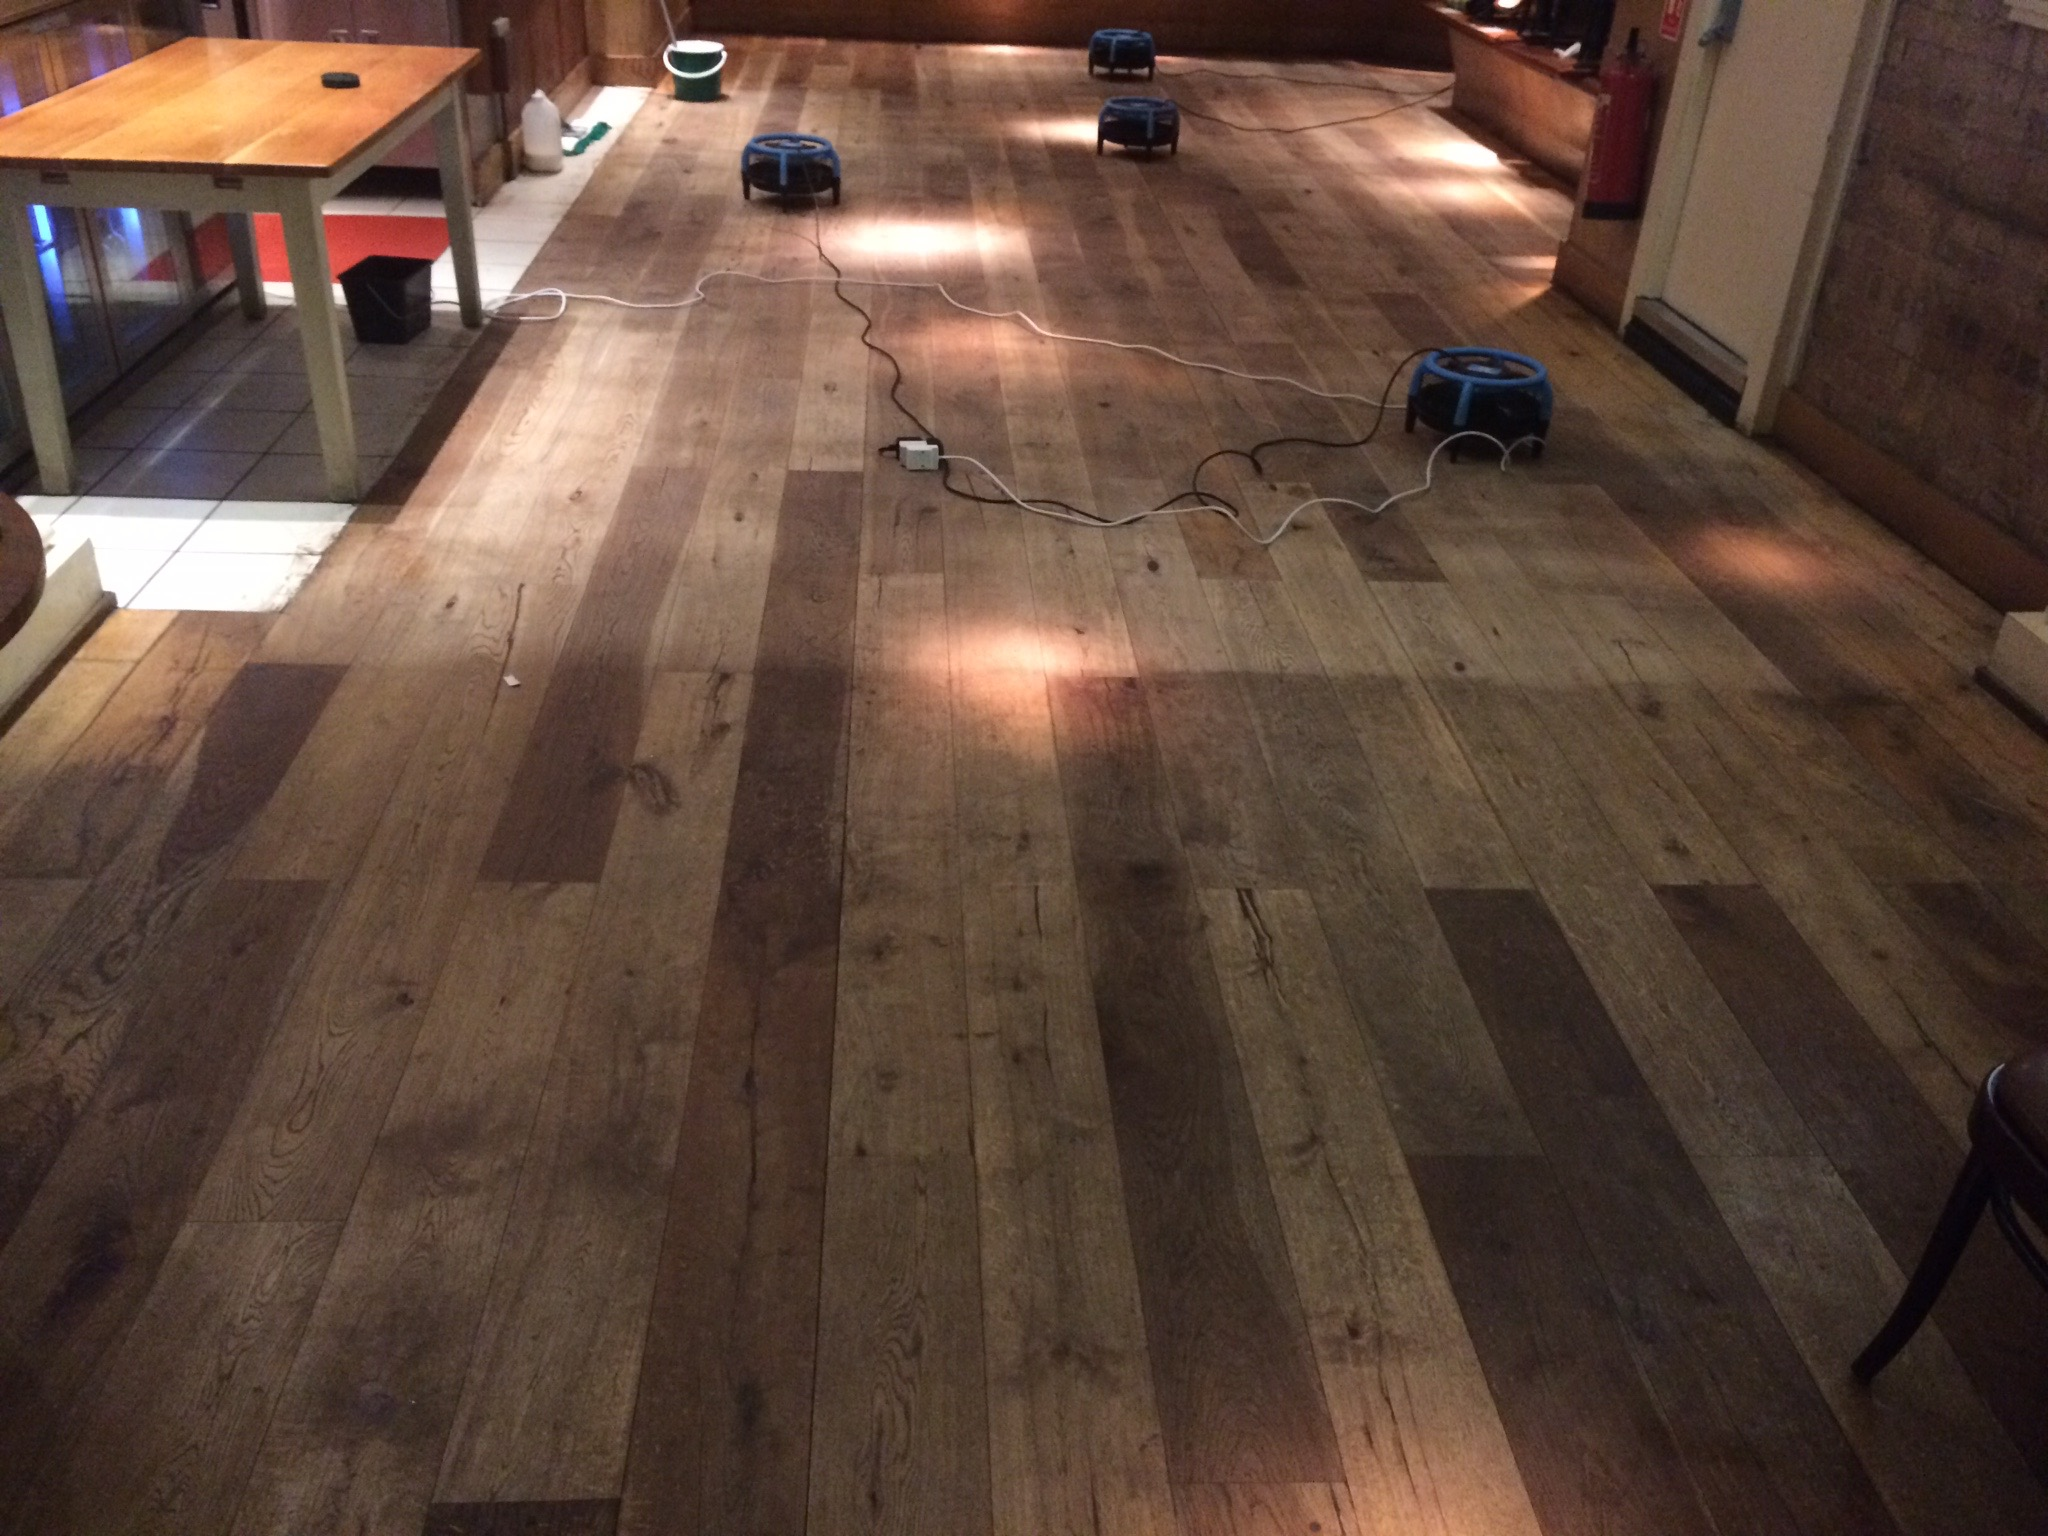 Wooden Floors Archives Silver Lining Floor Care